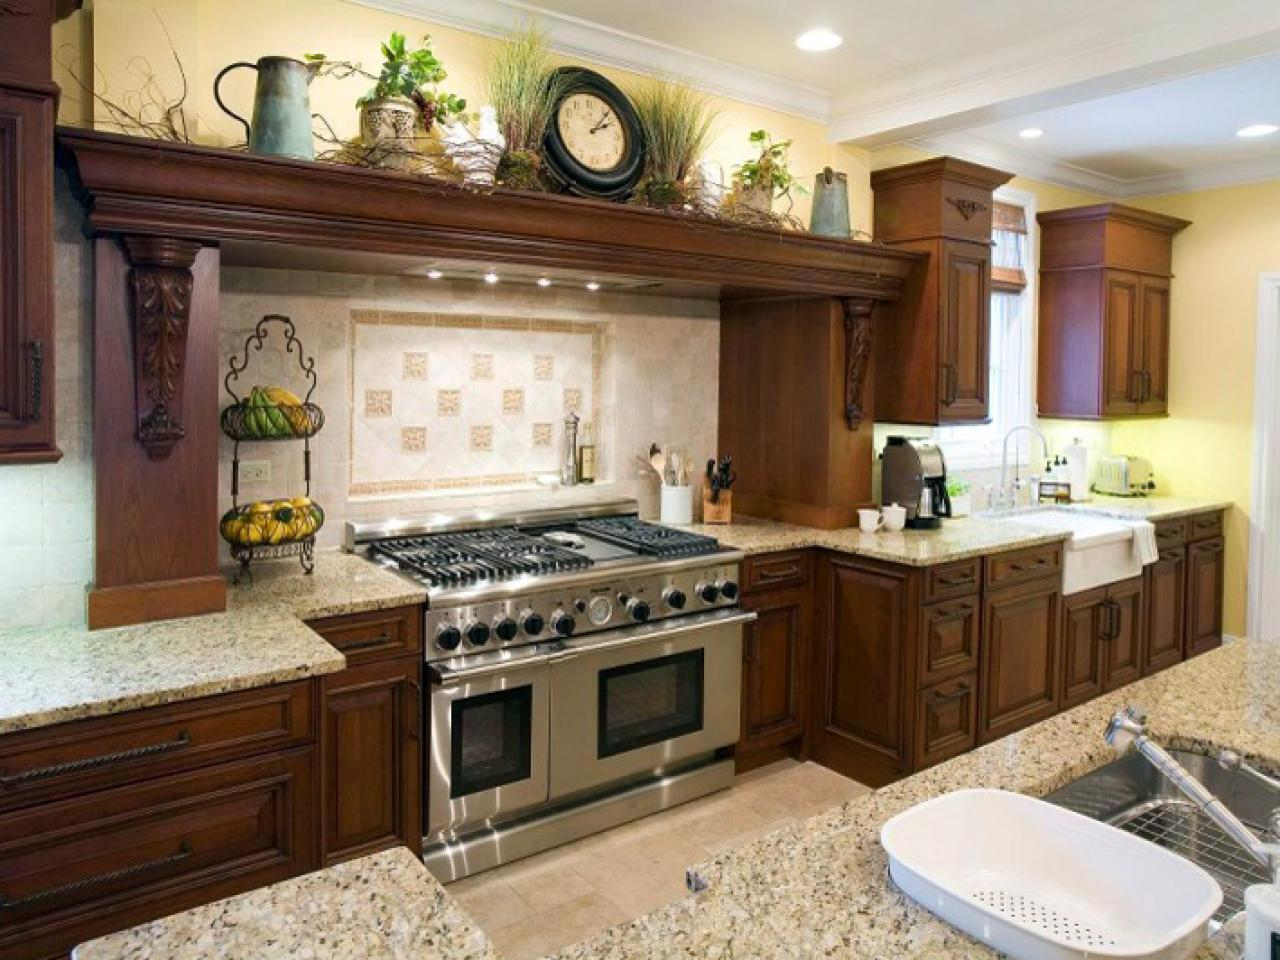 Mediterranean style kitchens kitchen designs choose for Design your kitchen